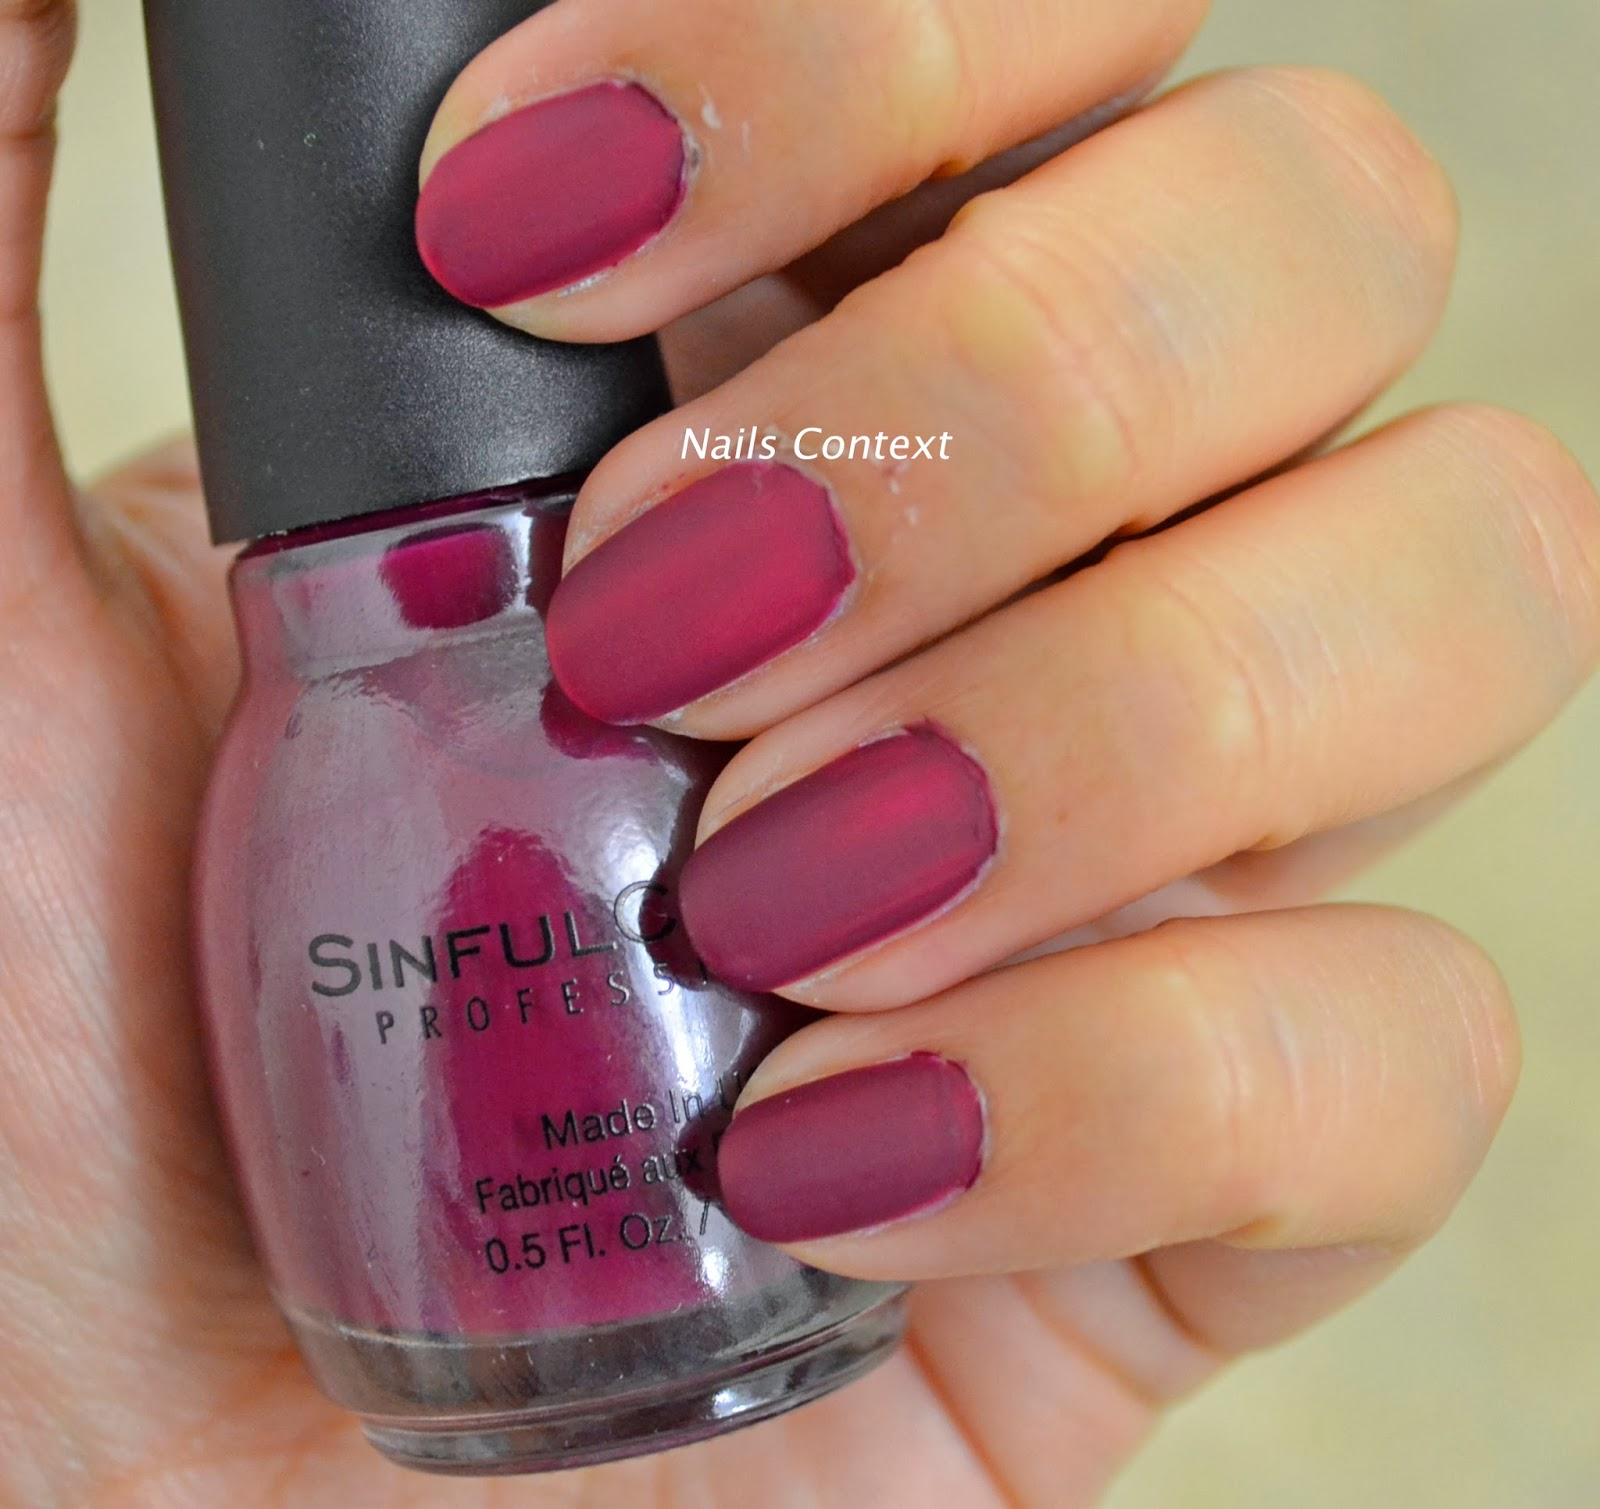 Nails Context: SinfulColors Professional Leather Luxe collection